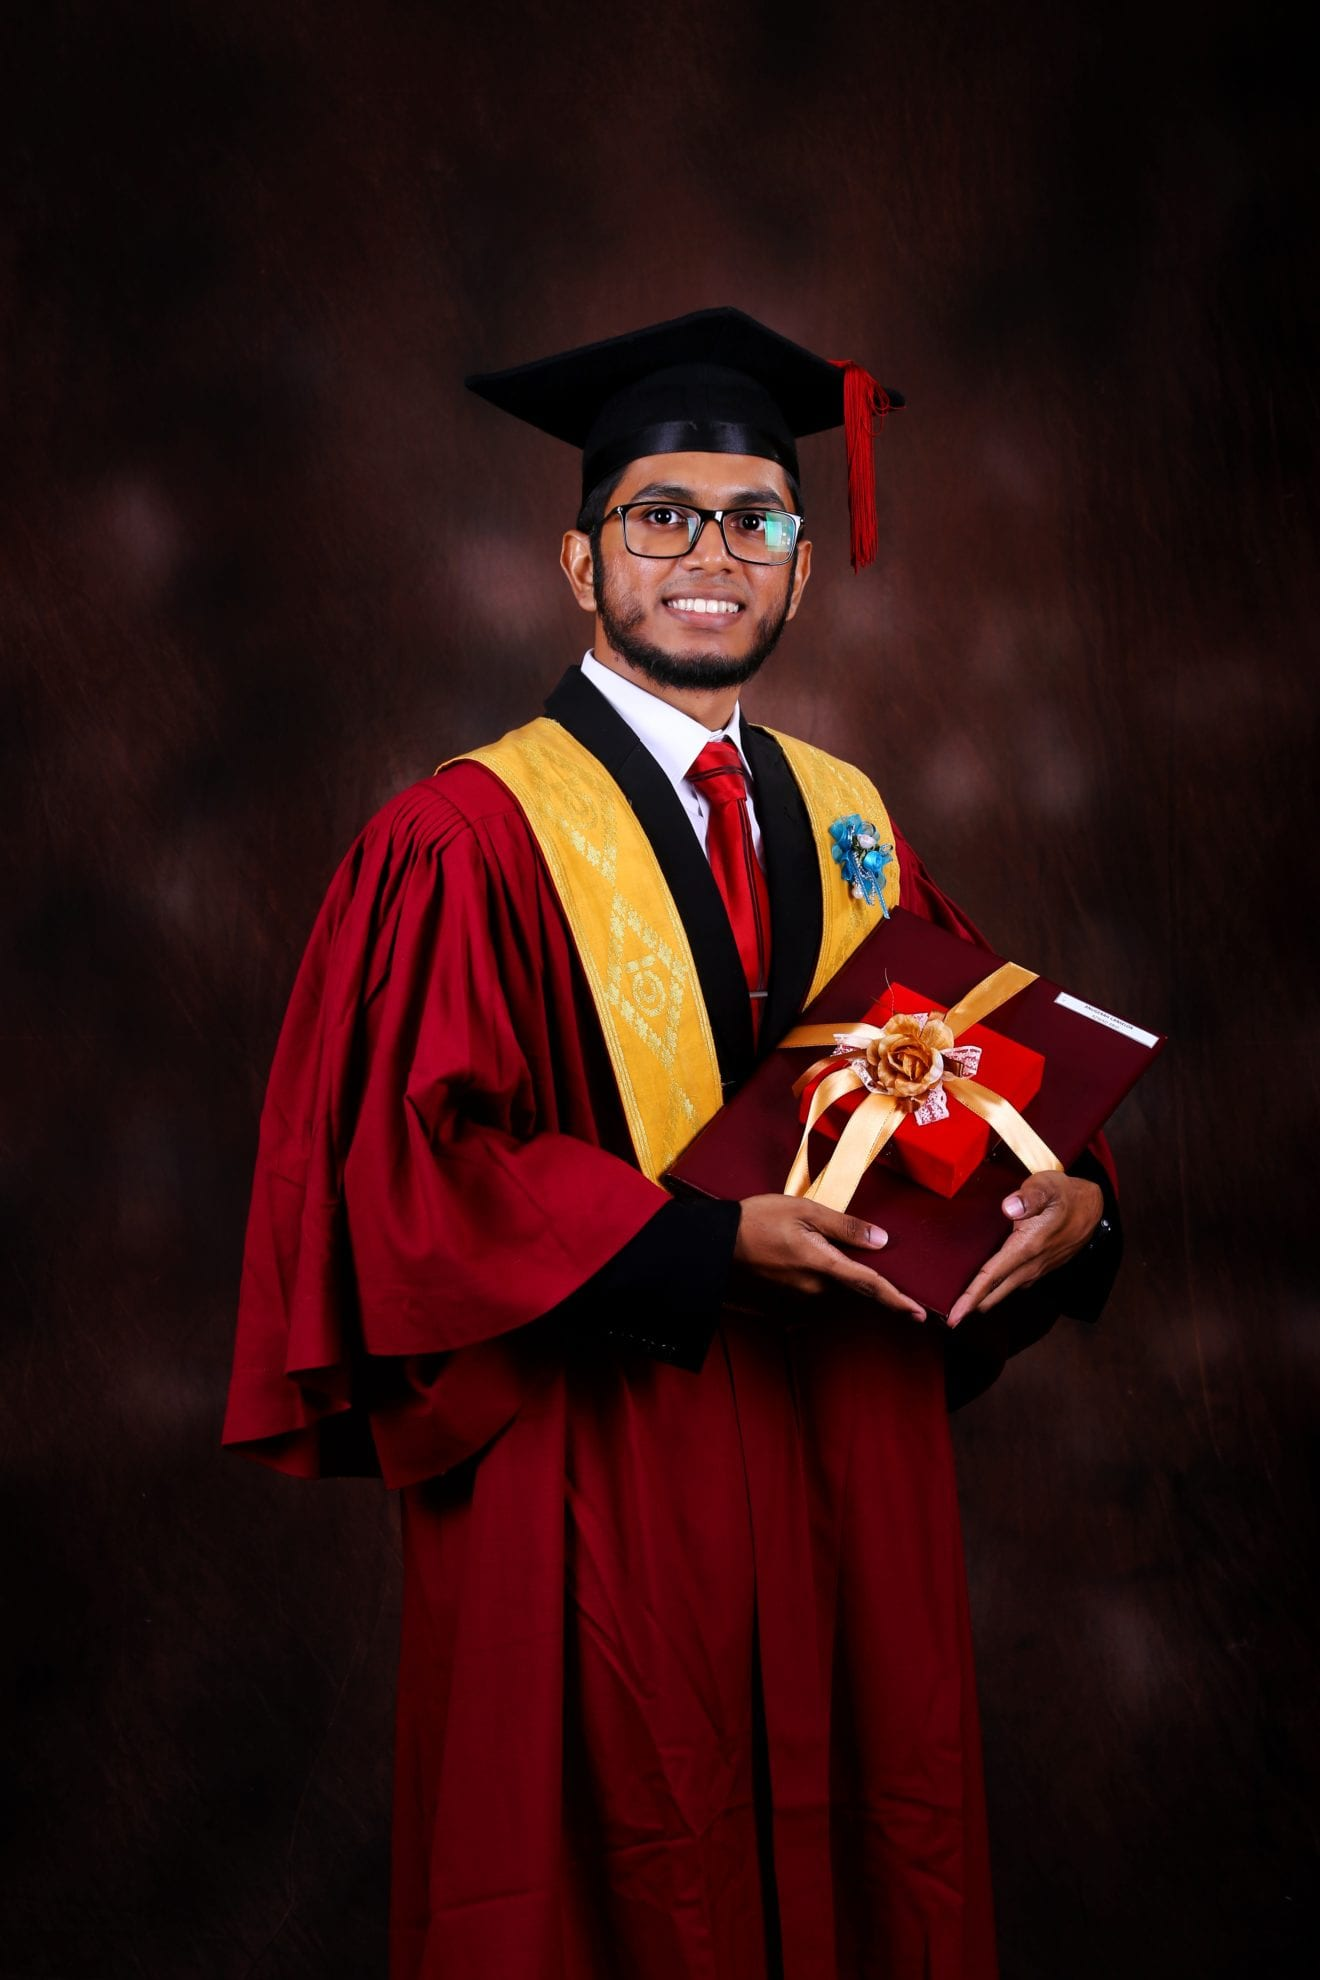 Chancellor's Award Winner, Azwad Abid, from School of Electrical Engineering